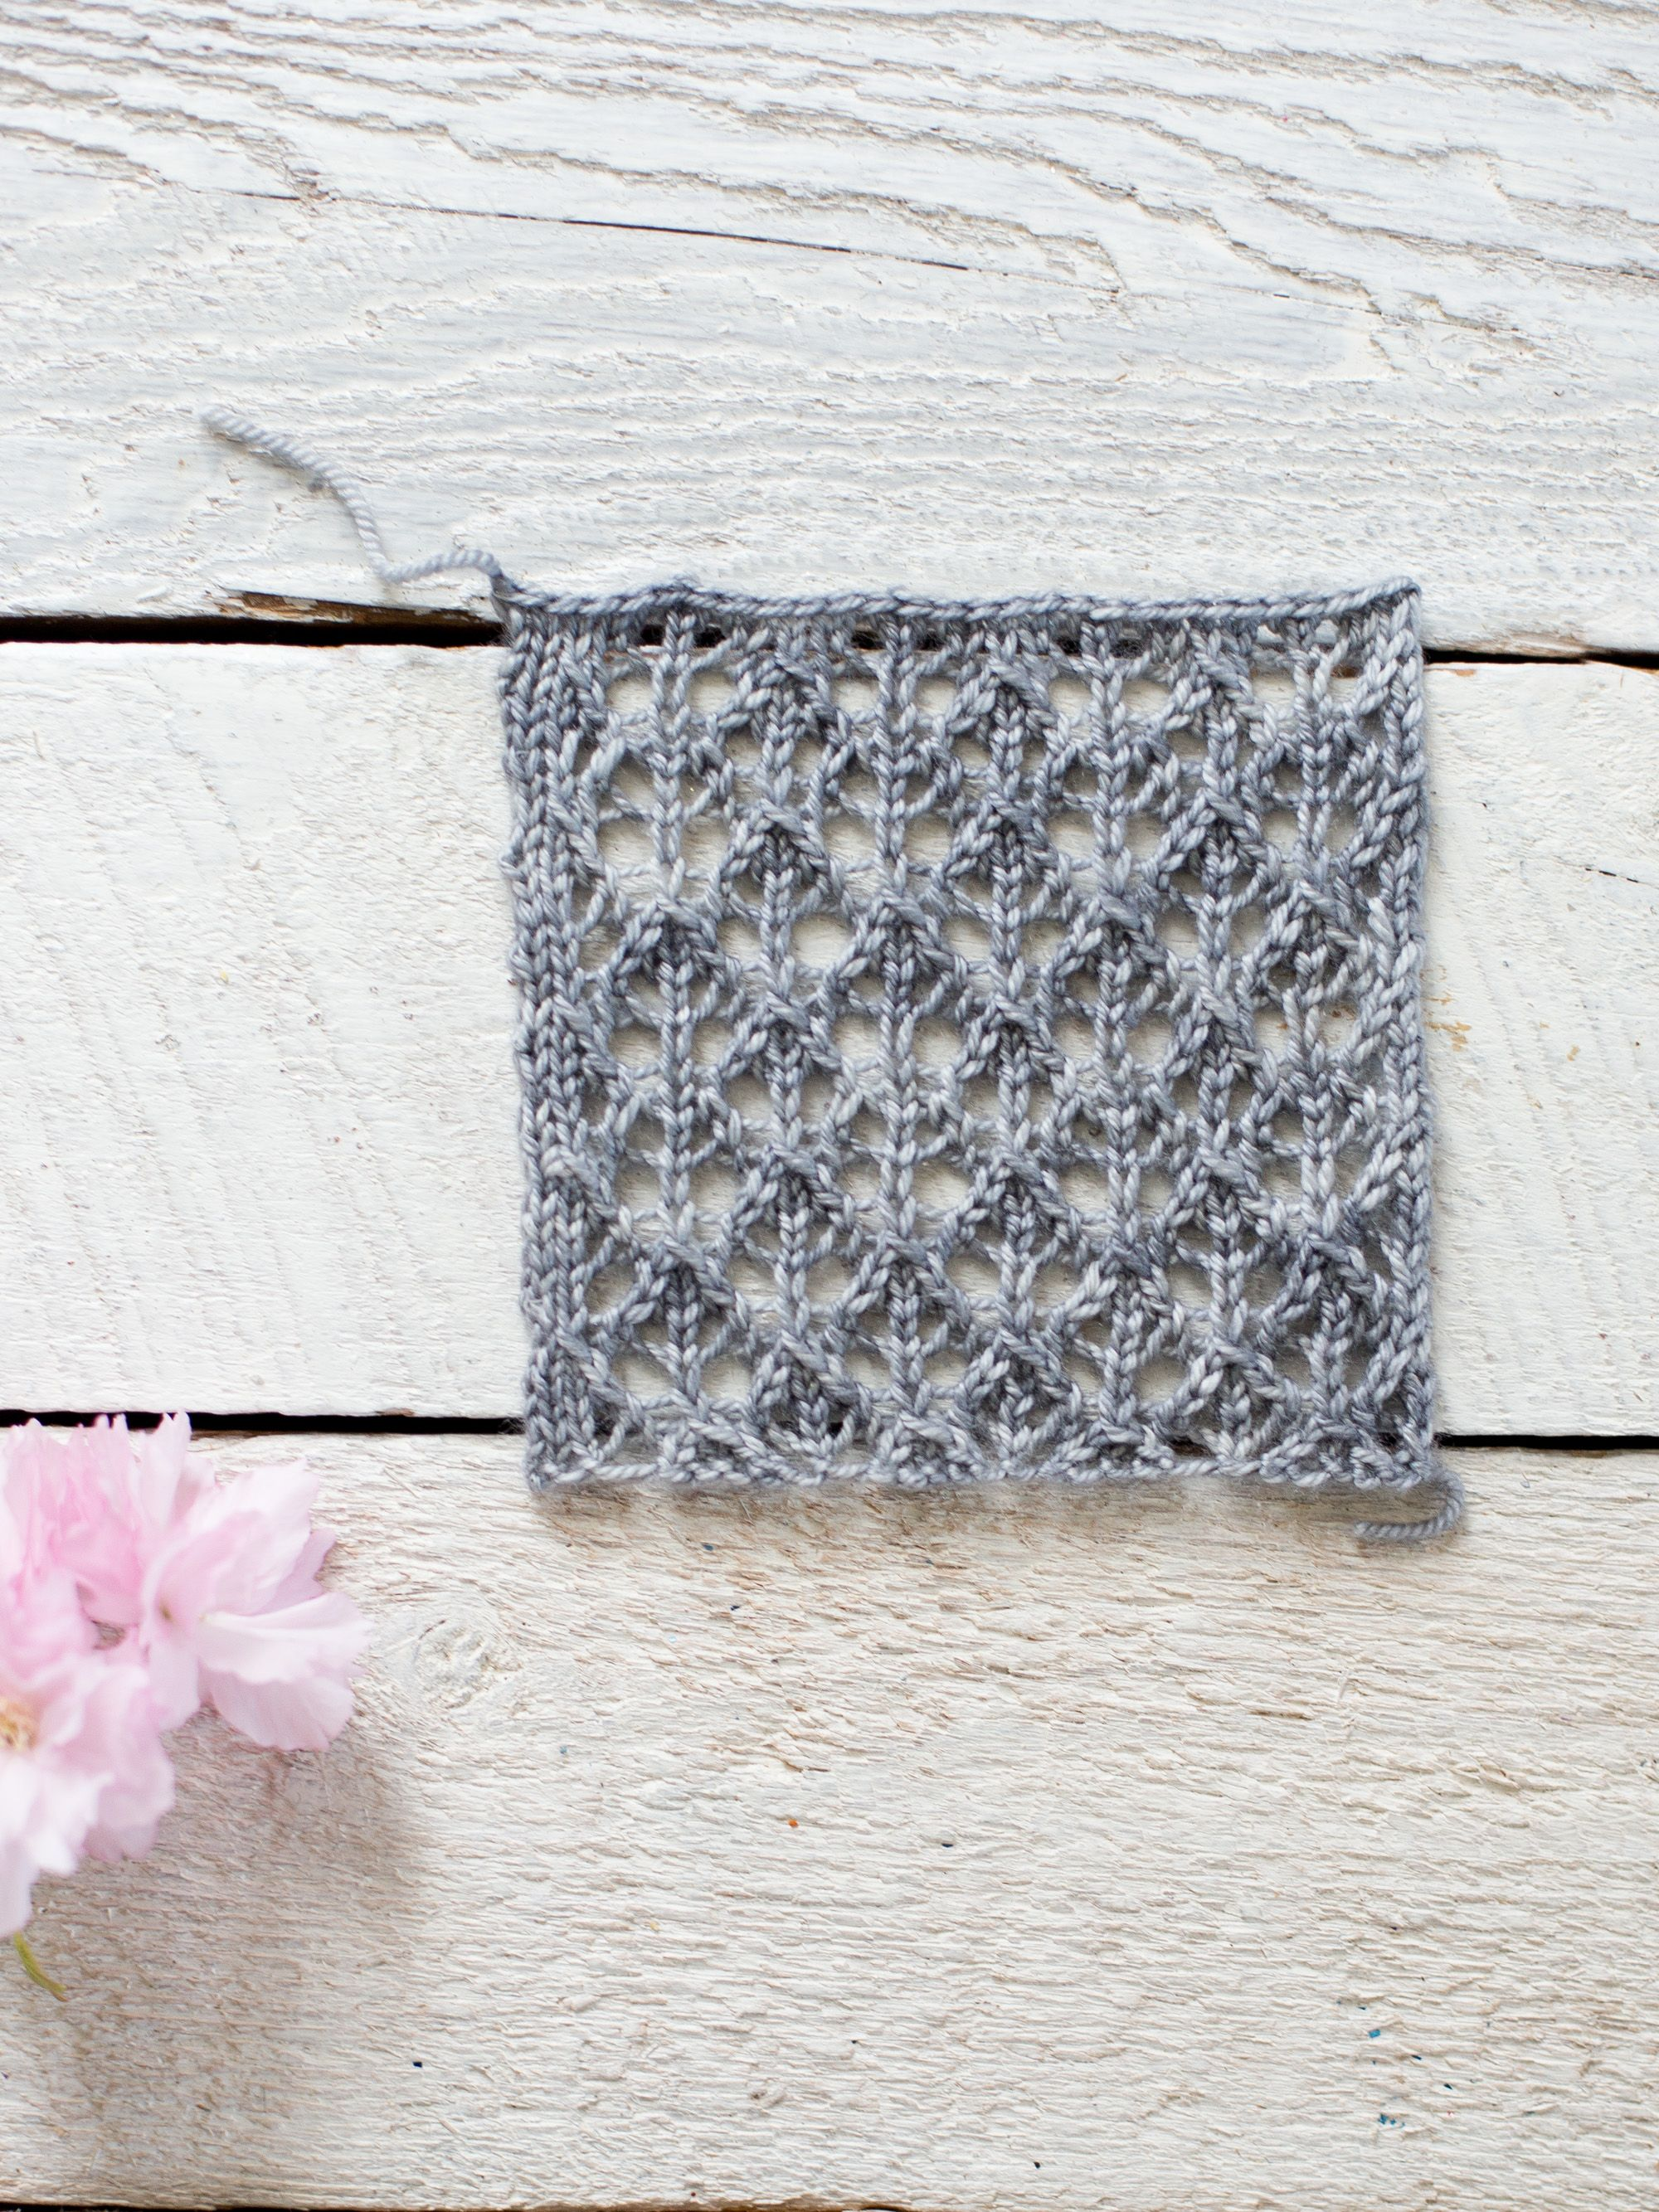 How To Make An Easy Lace Knit Shawl Pattern | Dos agujas, Tejido y ...